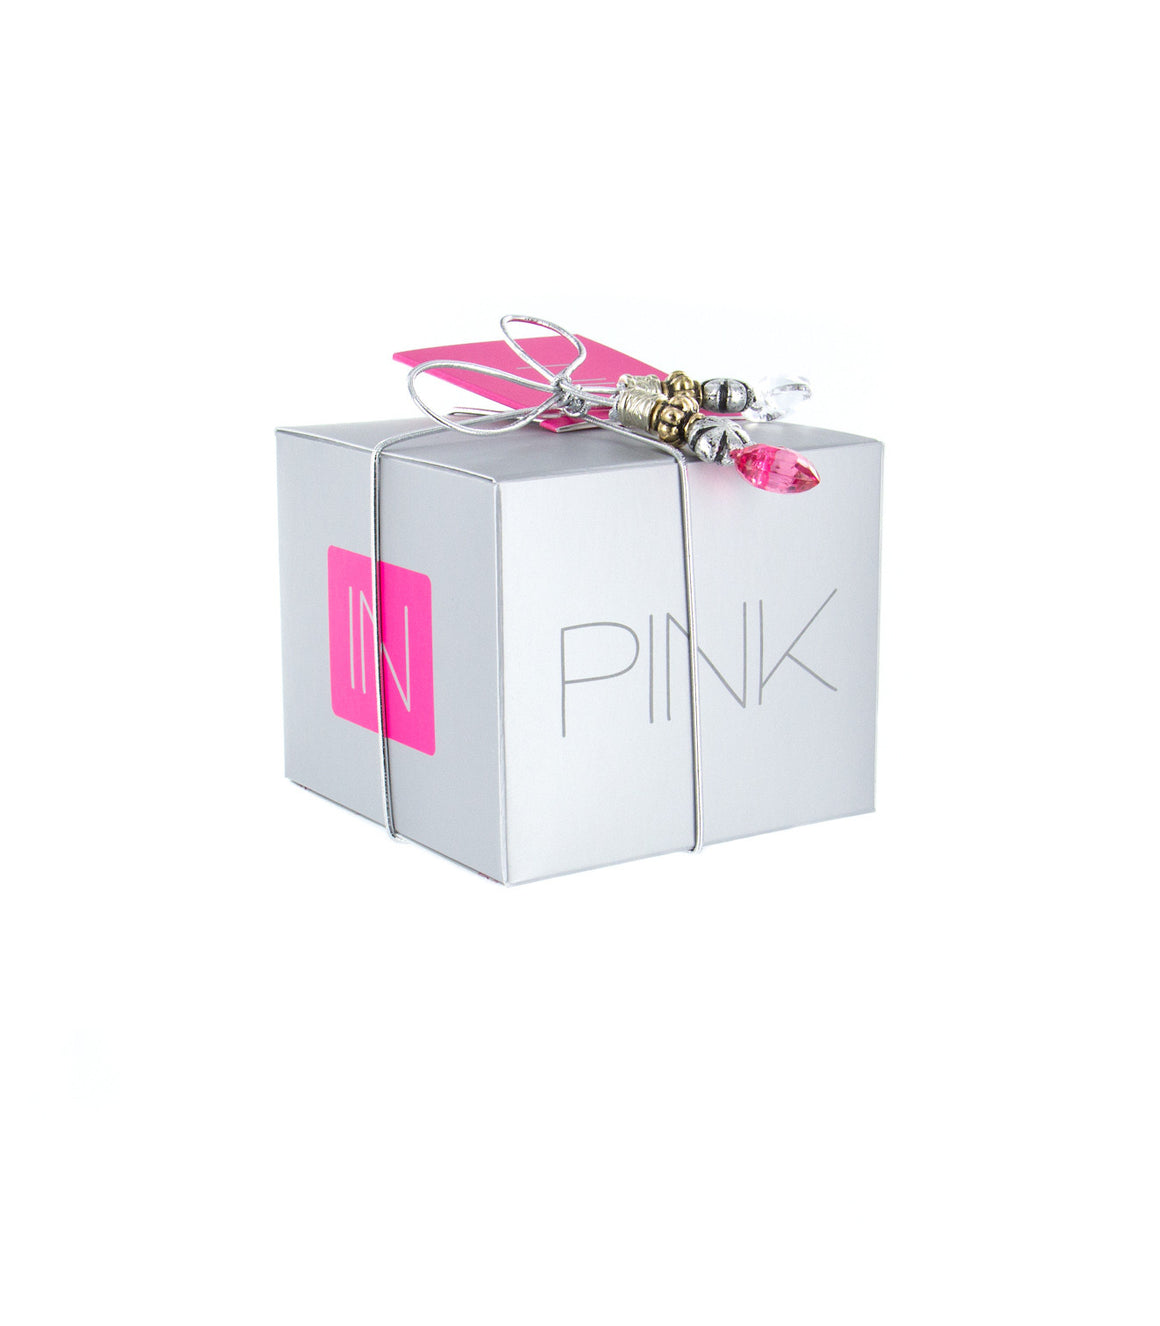 Medium INPINK Gift Box